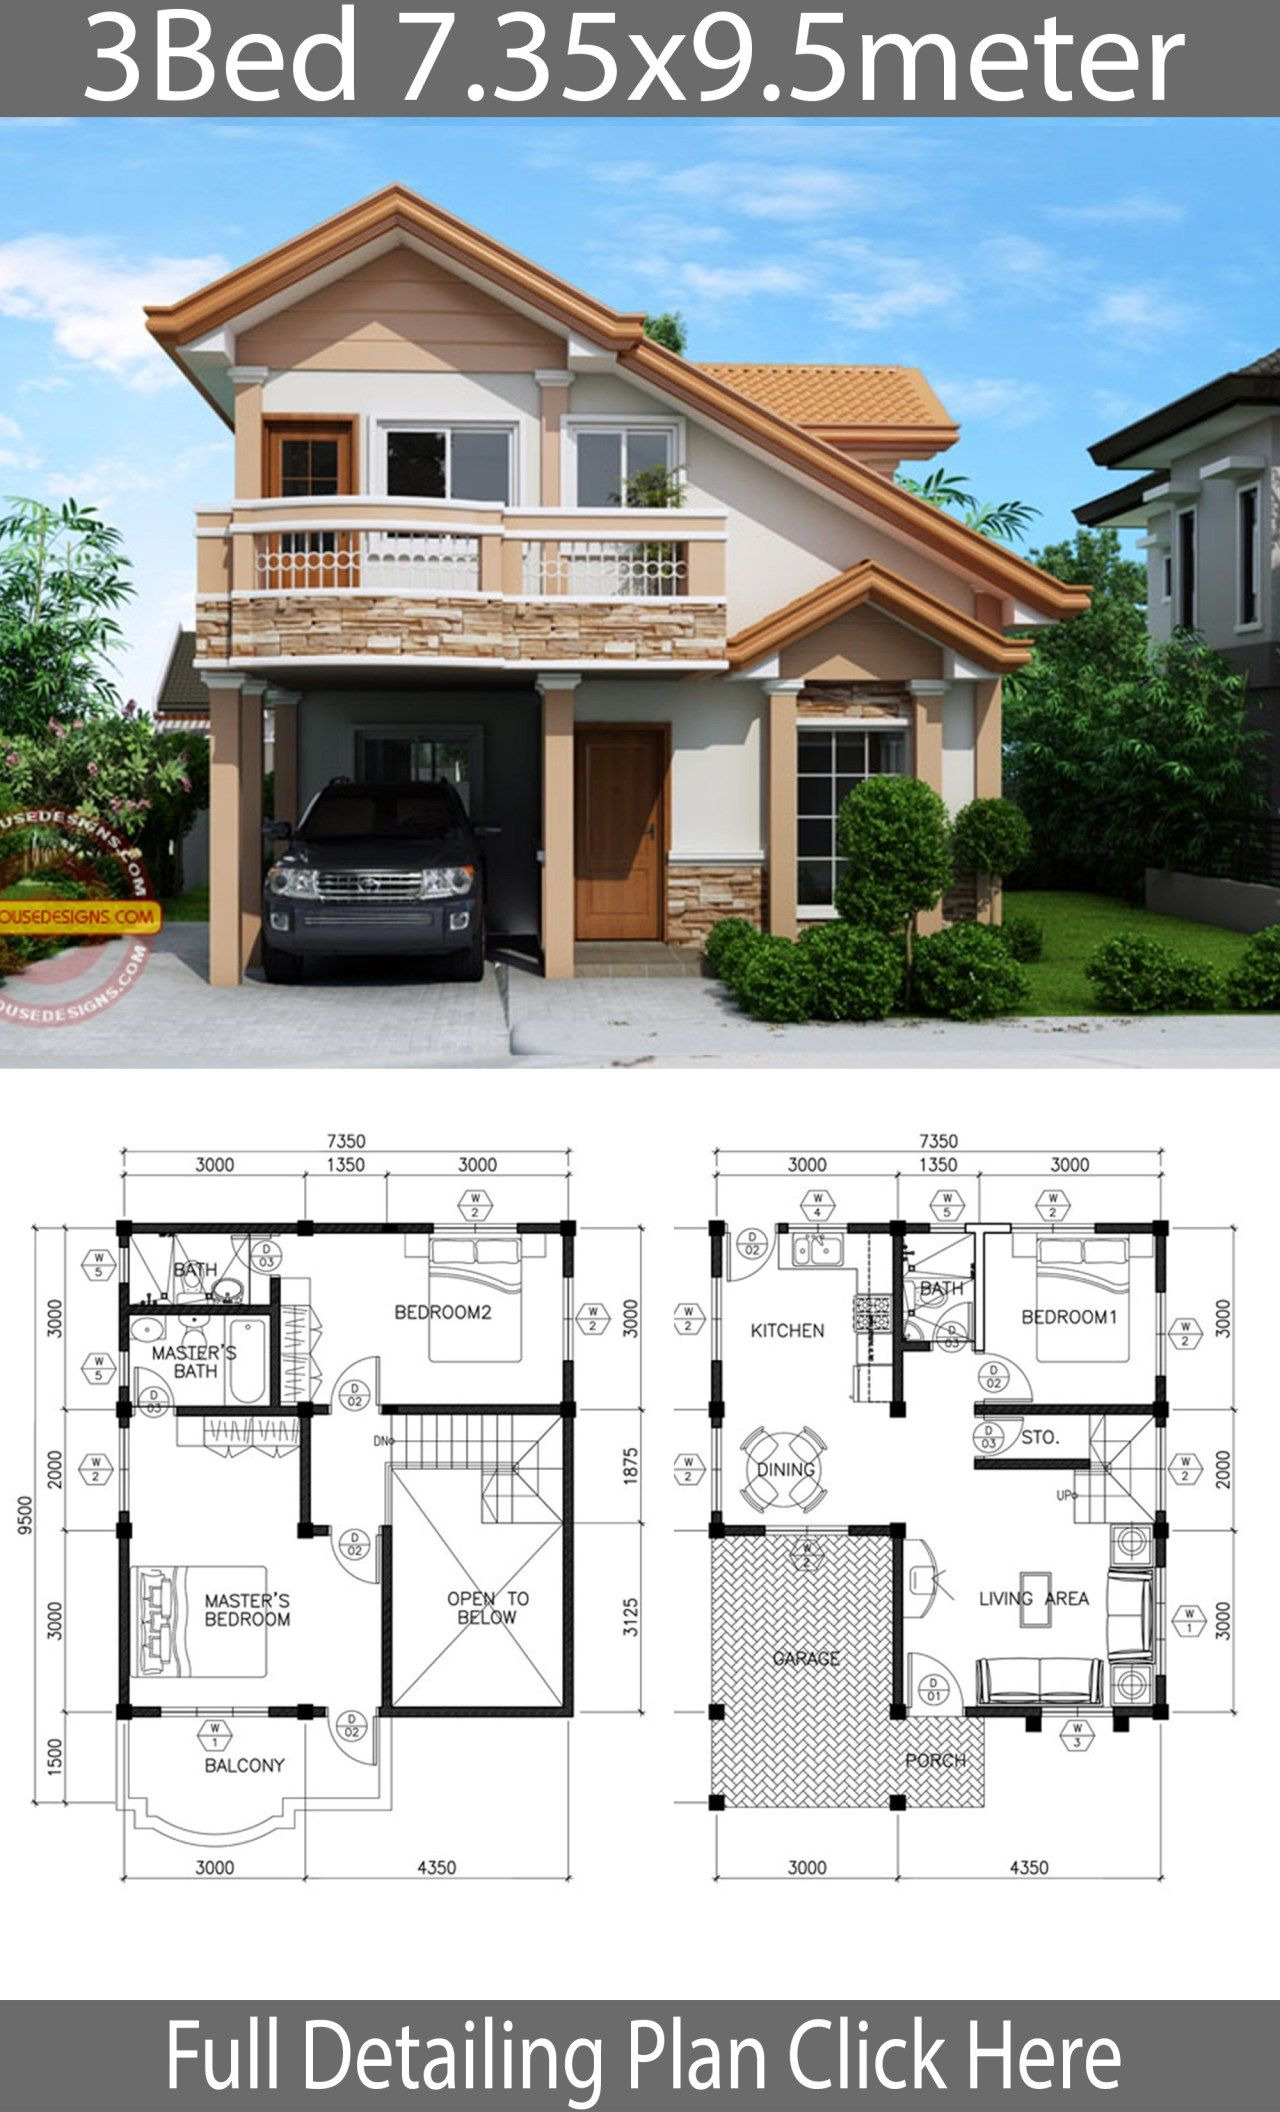 Modern Contemporary House Plans for Sale Unique Home Design Plan 7 35x9 5m with 3 Bedrooms